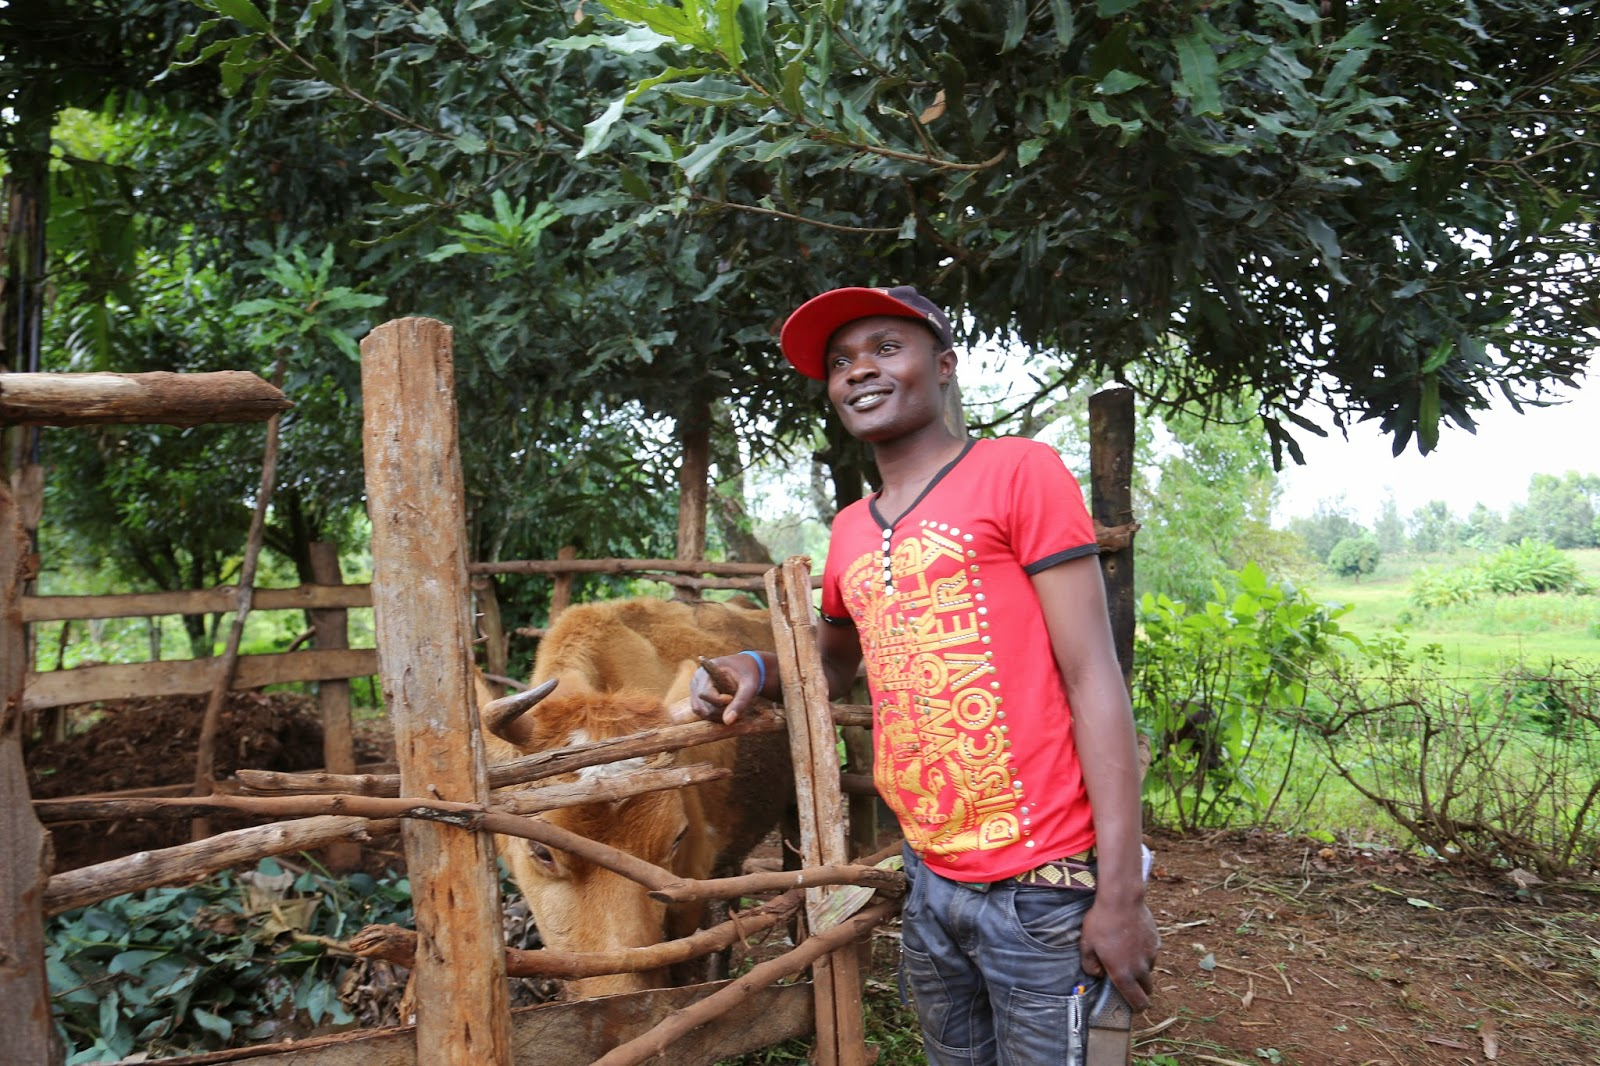 Meet Denis Kinyua, a 24 year old local champion from Cohort 4 of the STRYDE Technoserve host case study that has successfully used his investments in Agriculture to further his education and feed his family.